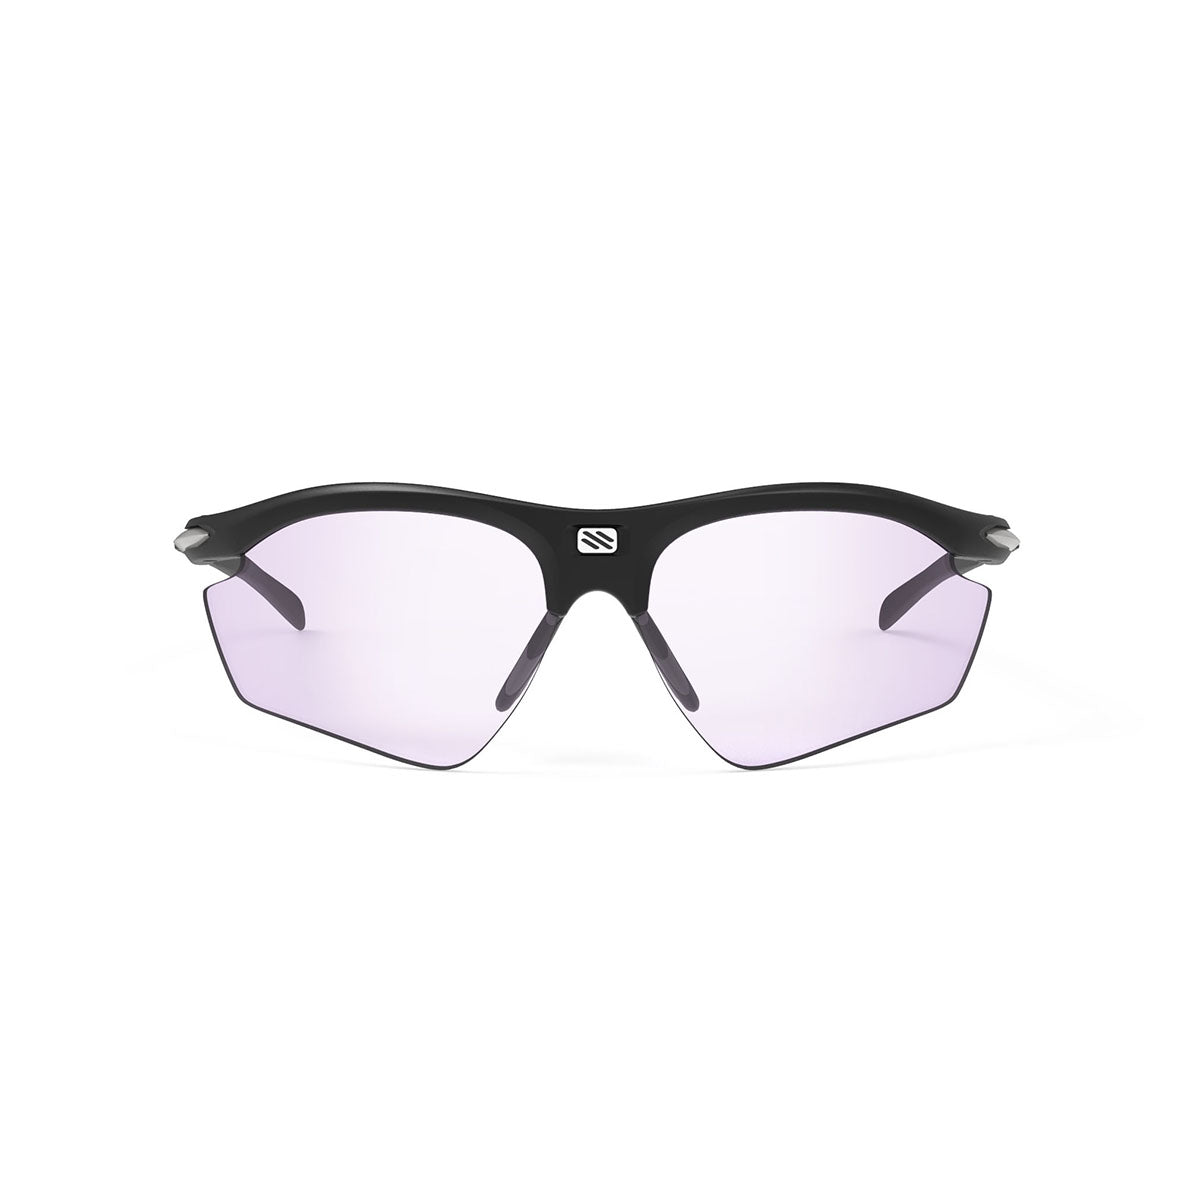 Rudy Project - Rydon Golf - frame color: Matte Black - lens color: ImpactX-2 Photochromic Laser Purple - photo angle: Front View Variant Hover Image